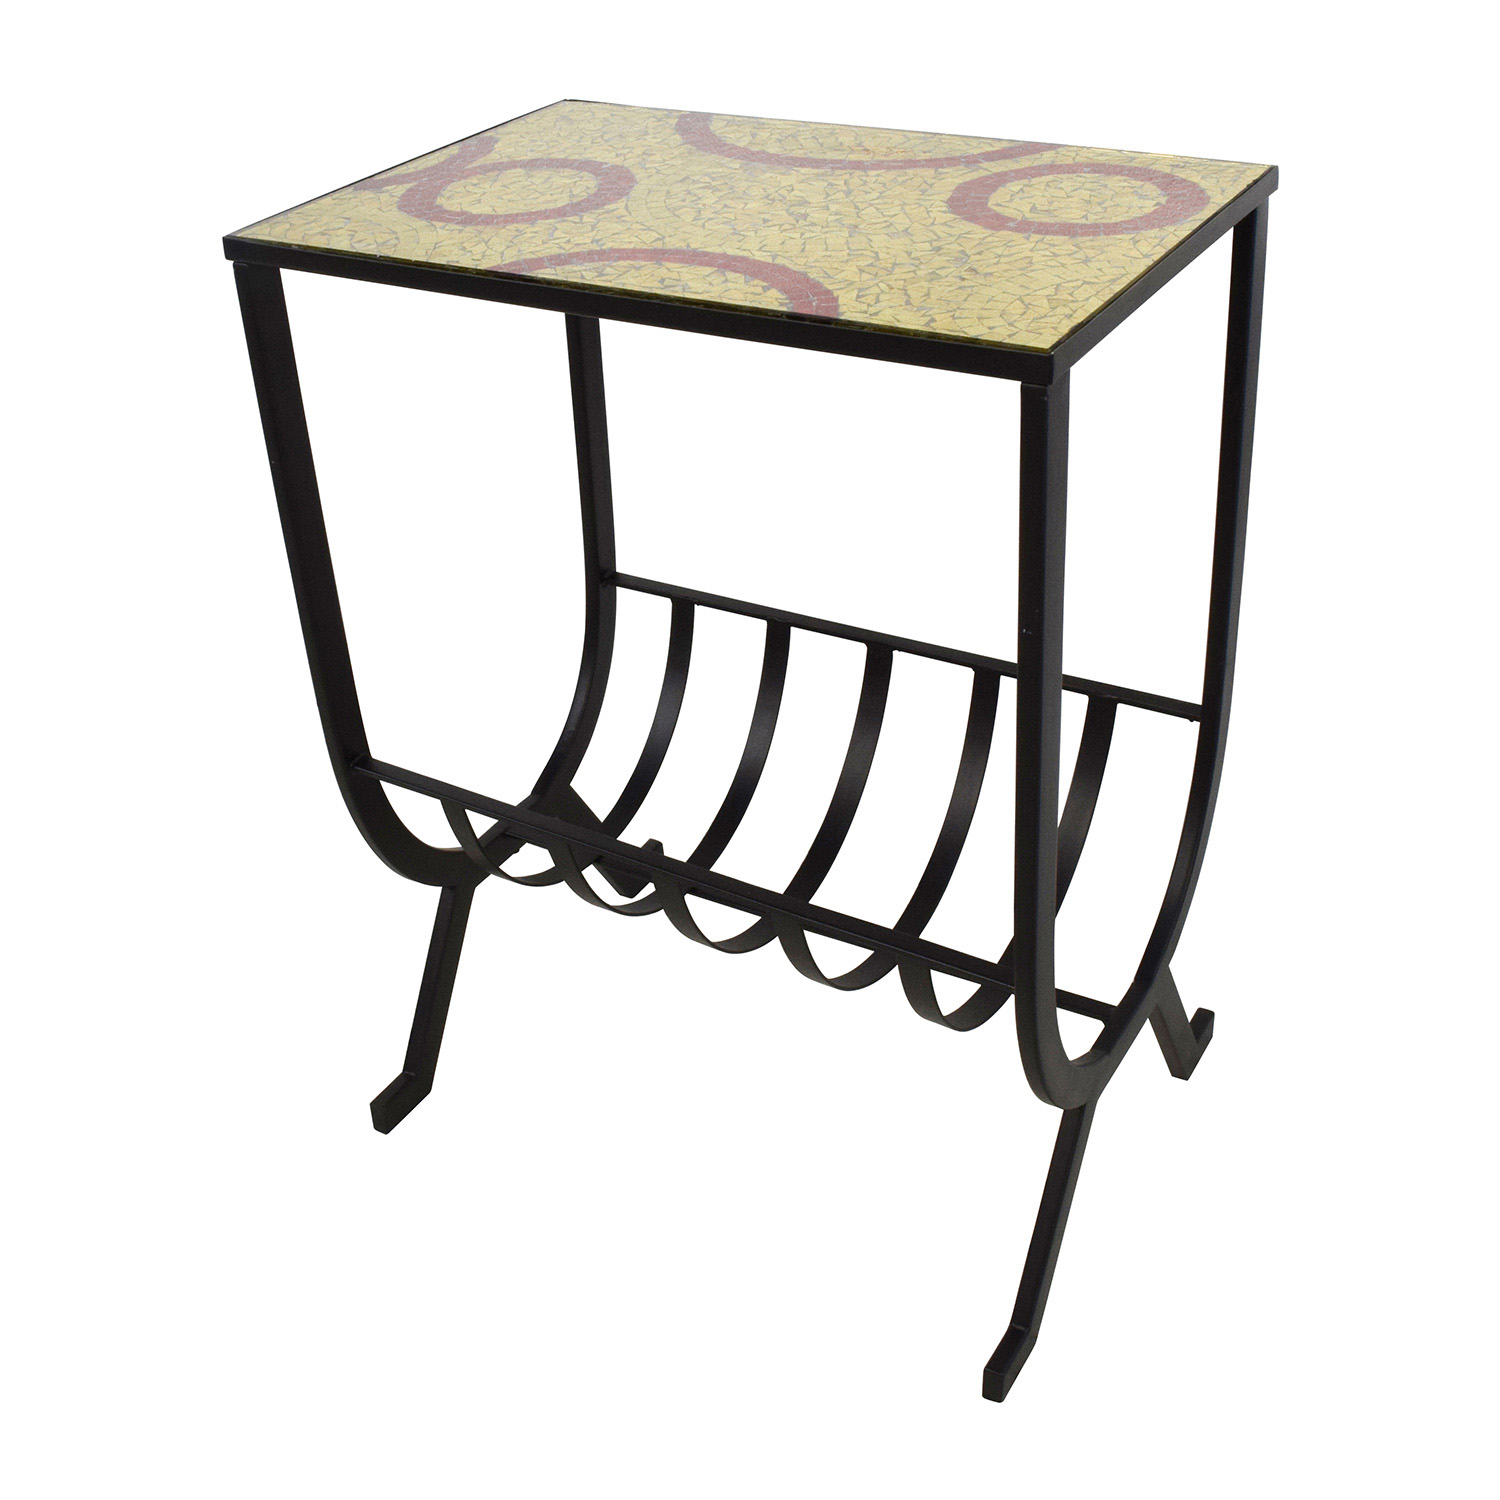 off pier mosaic magazine accent table tables with kohls elba square side bedside ideas butler desk furniture ikea dining sets room centerpieces everyday gold marble union jack